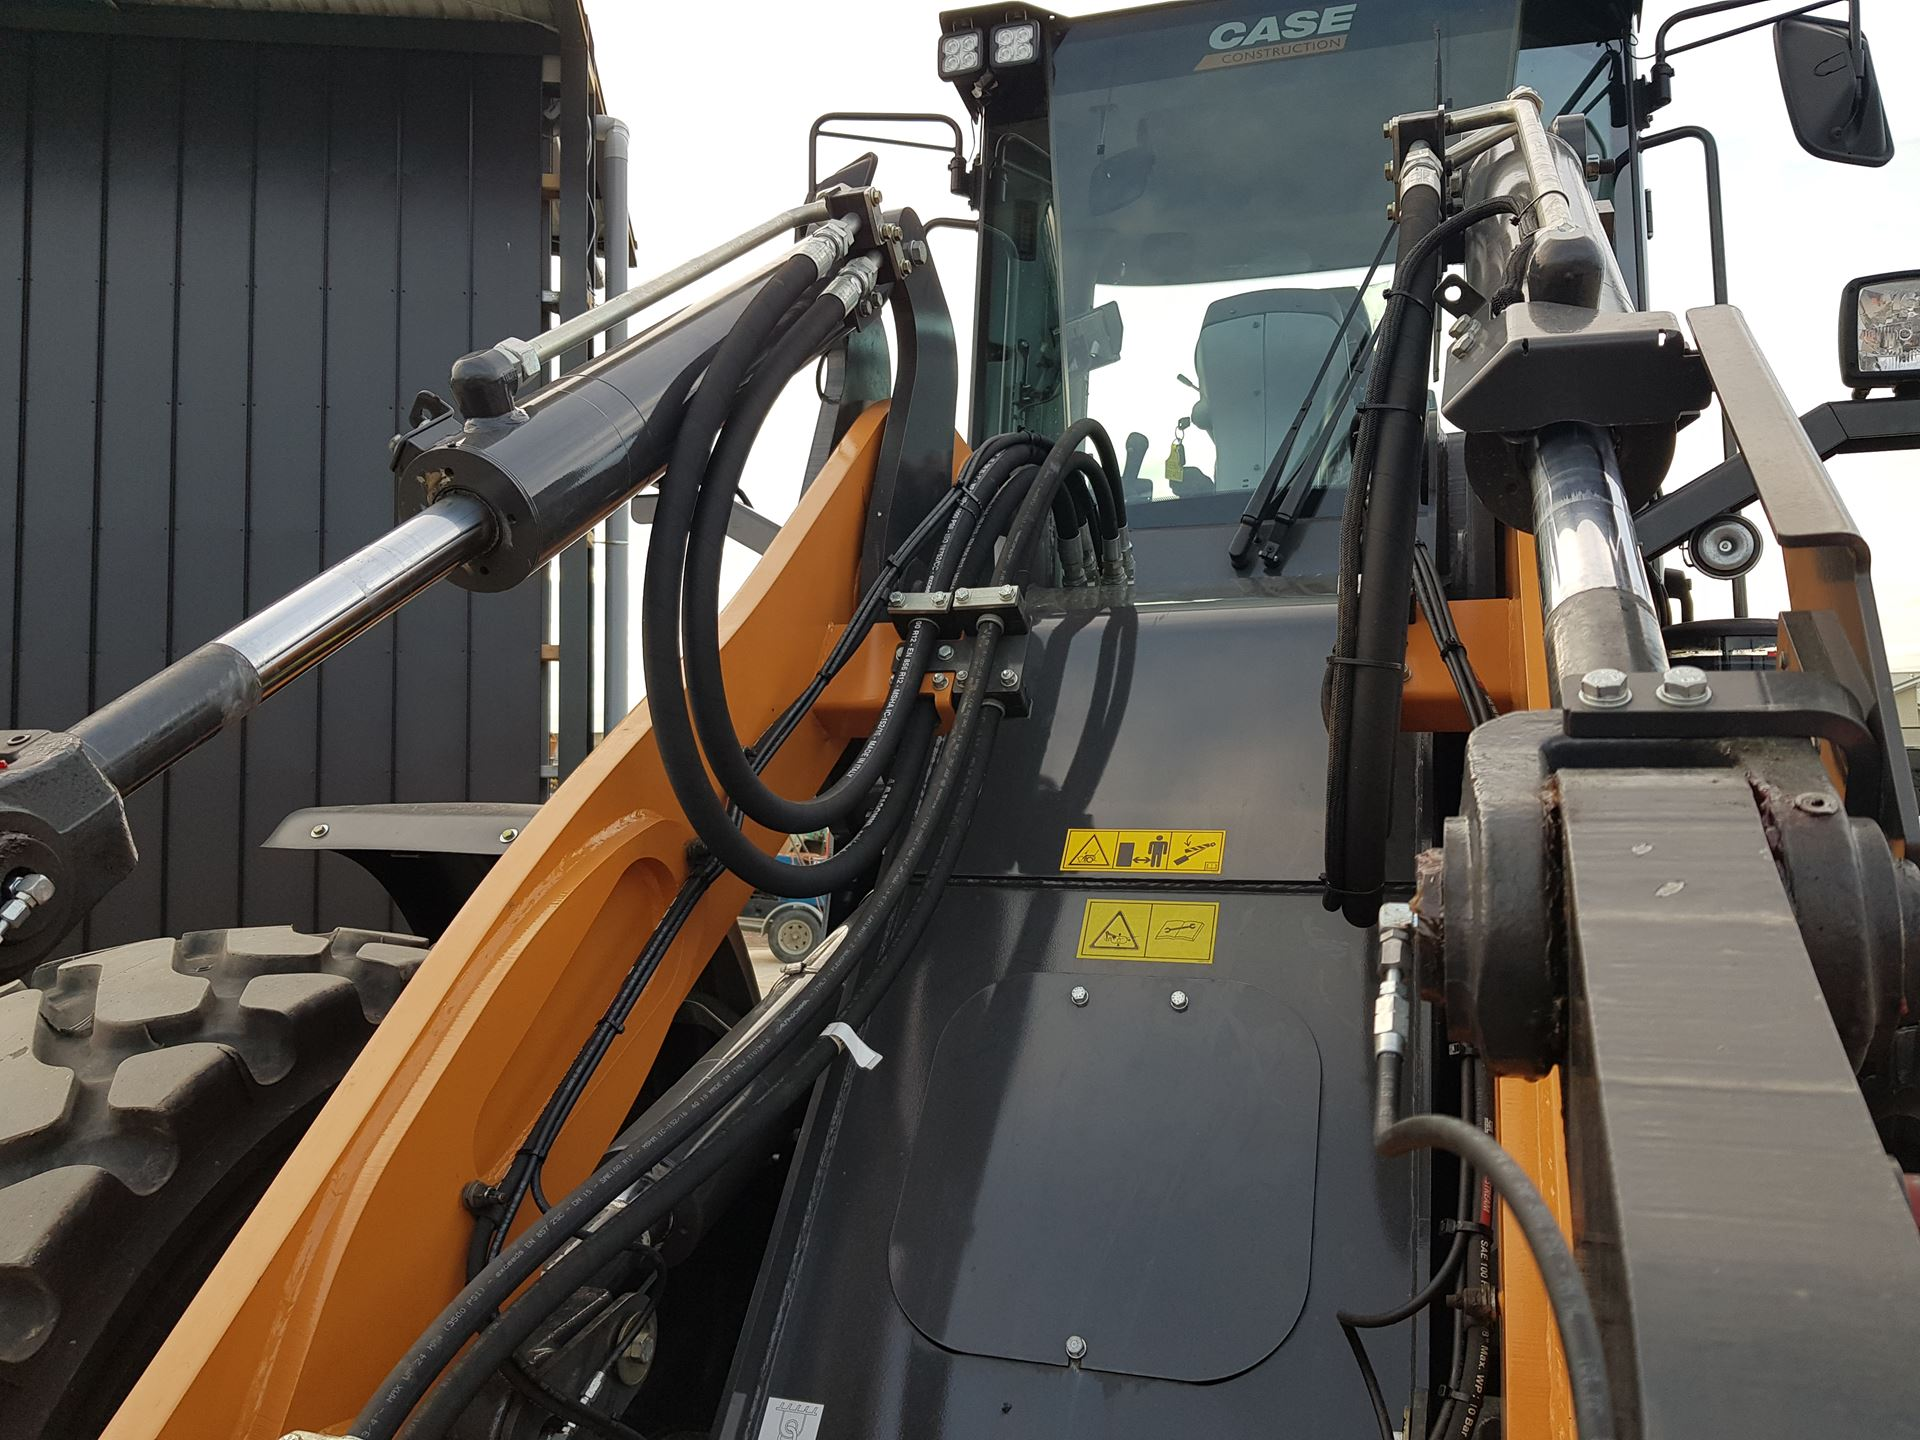 Picture of 15 Ton Case Loader